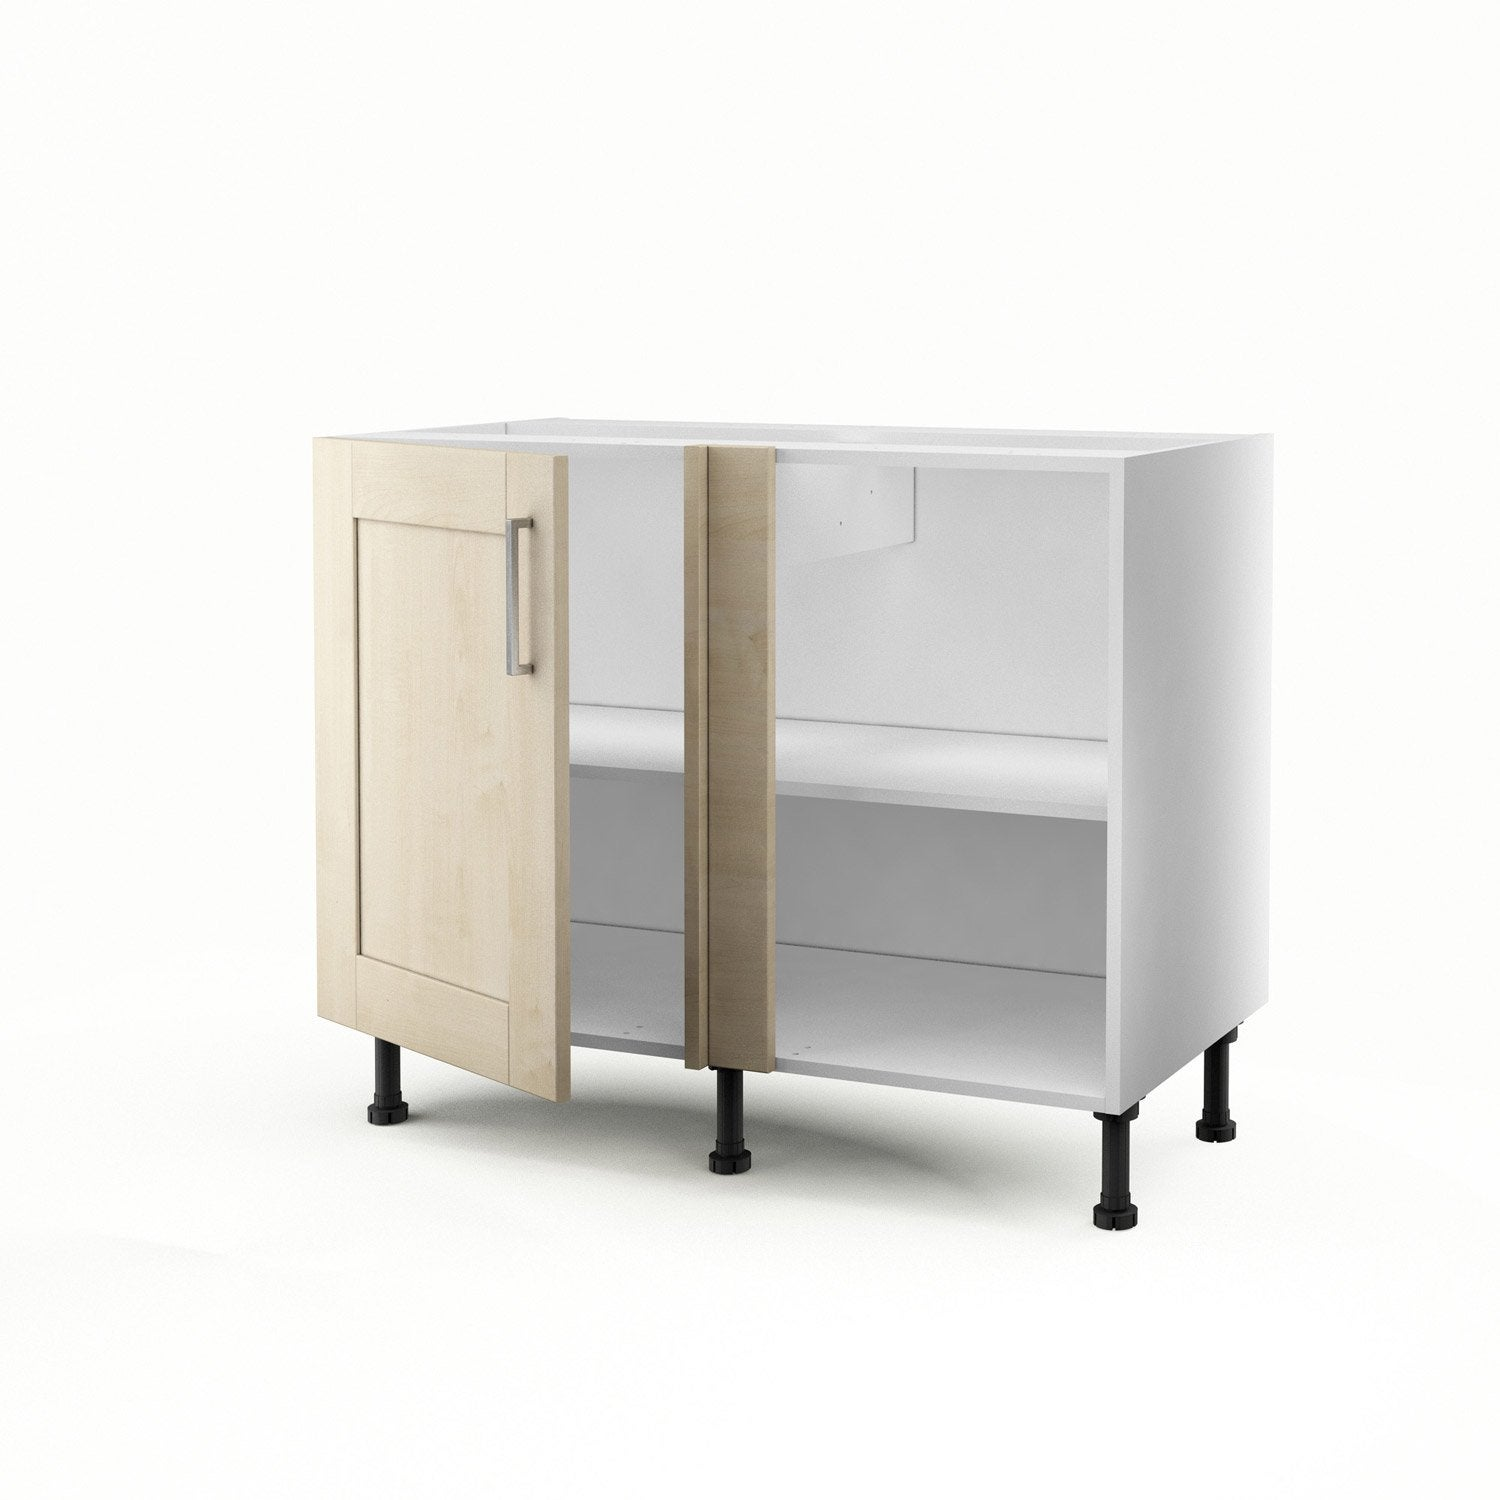 meuble de cuisine bas d 39 angle blanc 1 porte ines x x cm leroy merlin. Black Bedroom Furniture Sets. Home Design Ideas